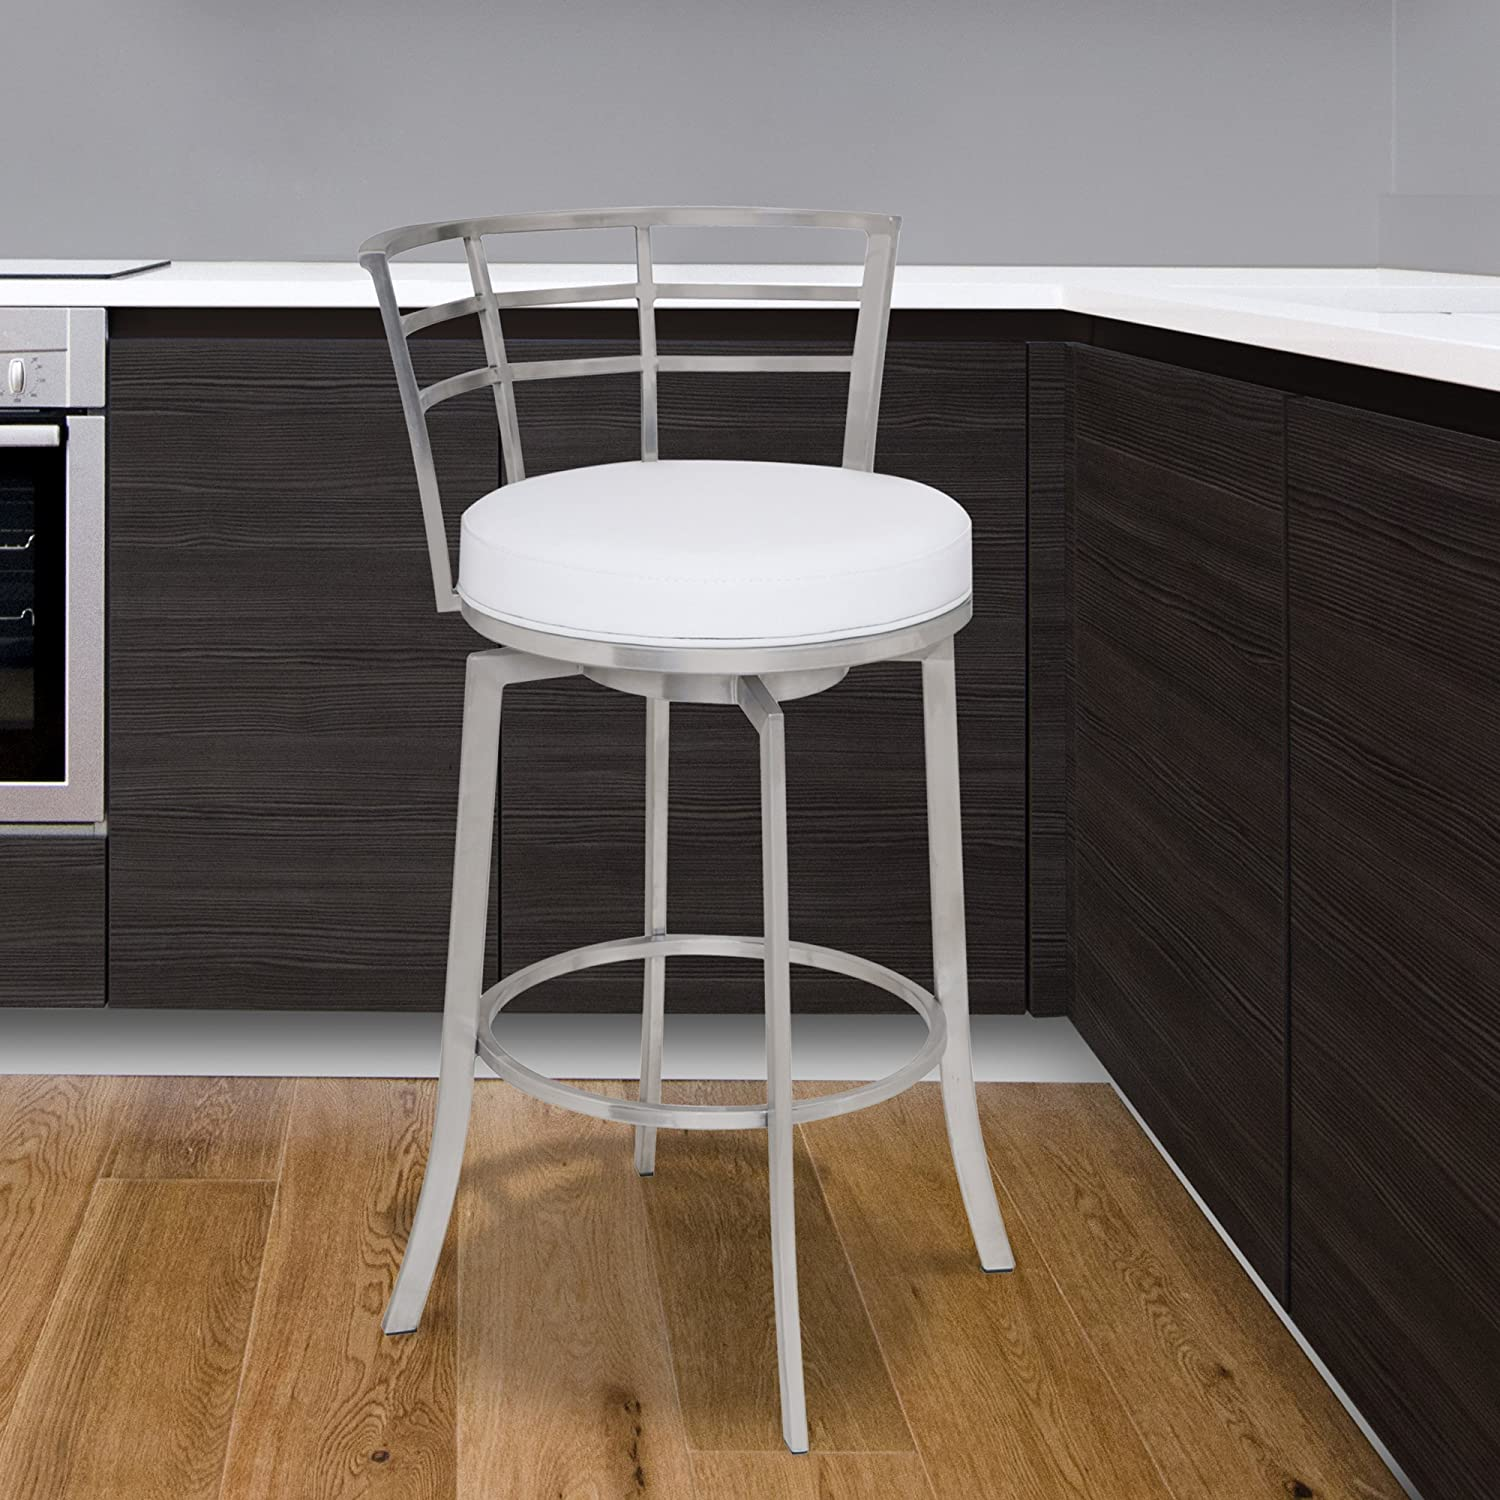 Armen Living Viper 26 Counter Height Swivel Barstool in White Faux Leather and Brushed Stainless Steel Finish